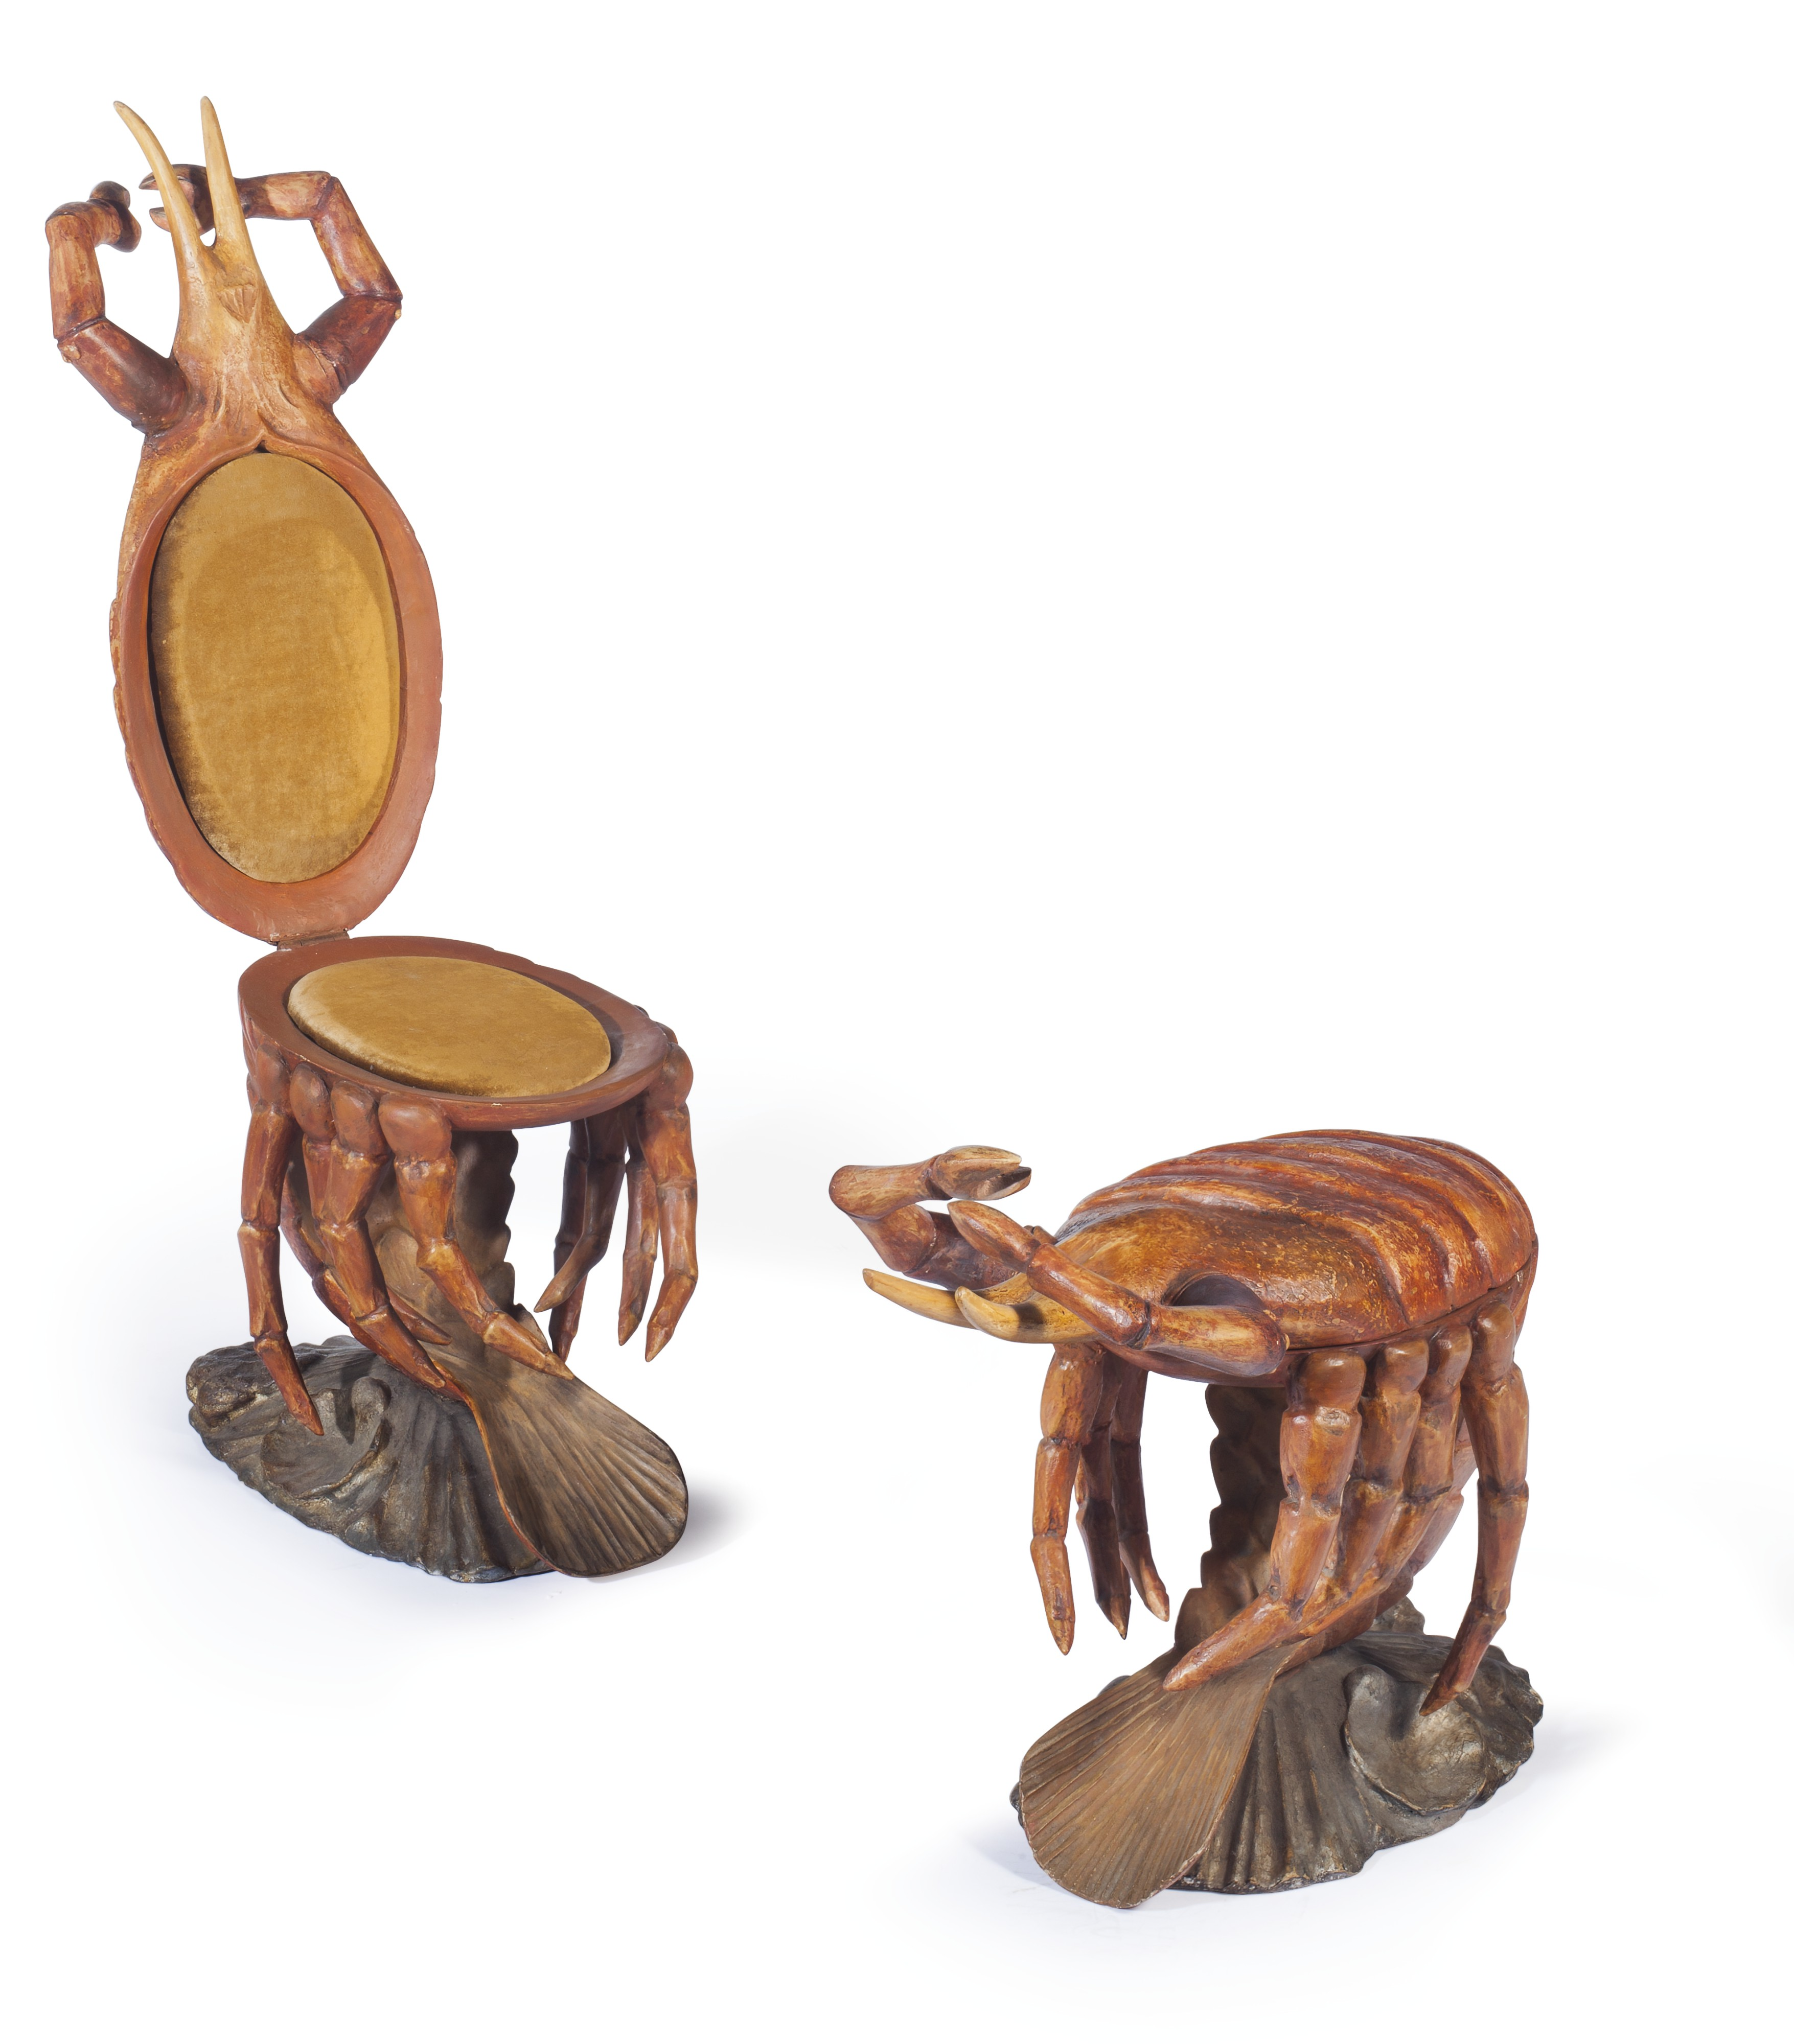 Update: The Venetian Lobster Form Chairs Sold For $7,500.